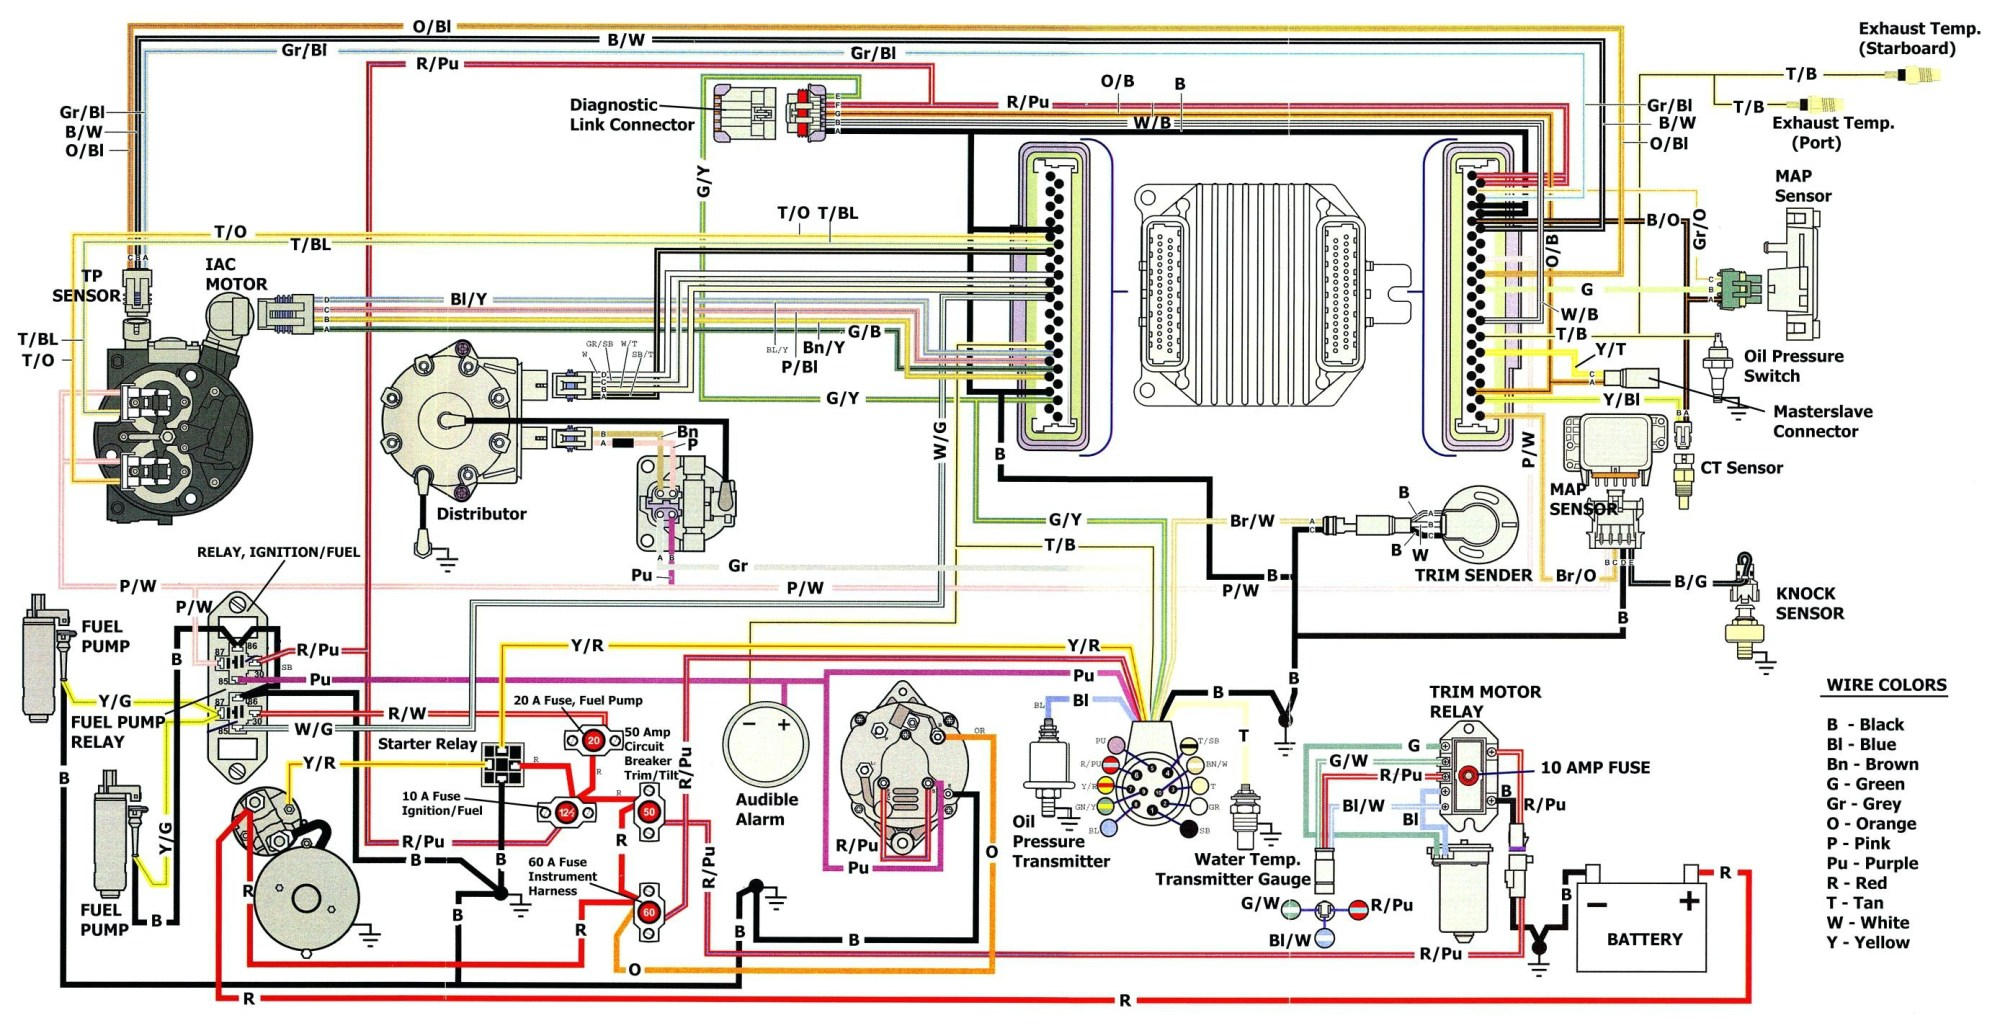 hight resolution of volvo v70 engine diagram i just bought a 1999 volvo v70 i have not